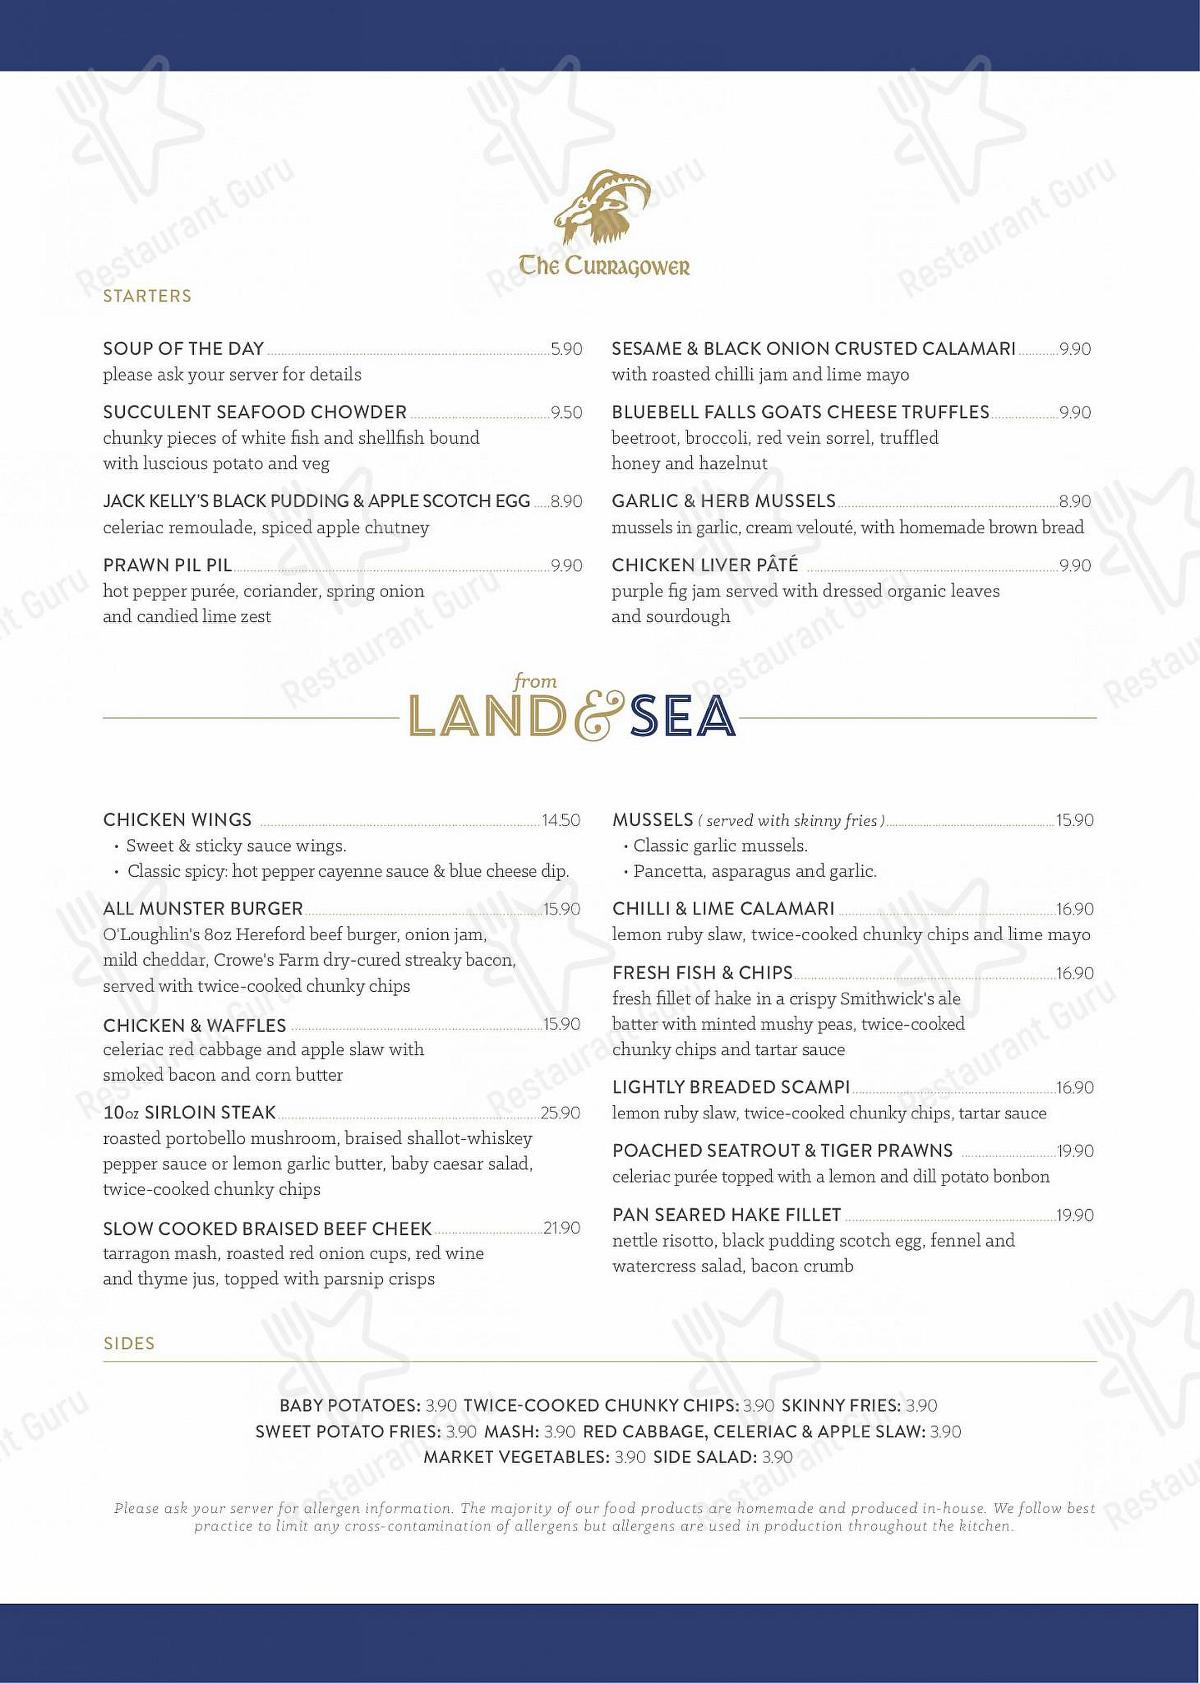 The Curragower menu - meals and drinks